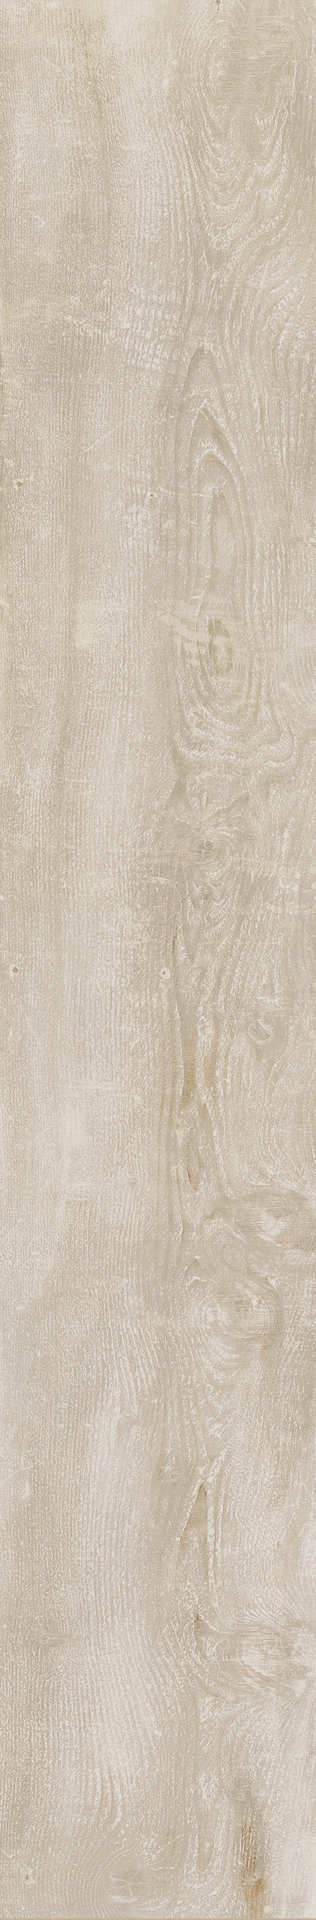 Cross Wood tile collection by Panaria | TileScout